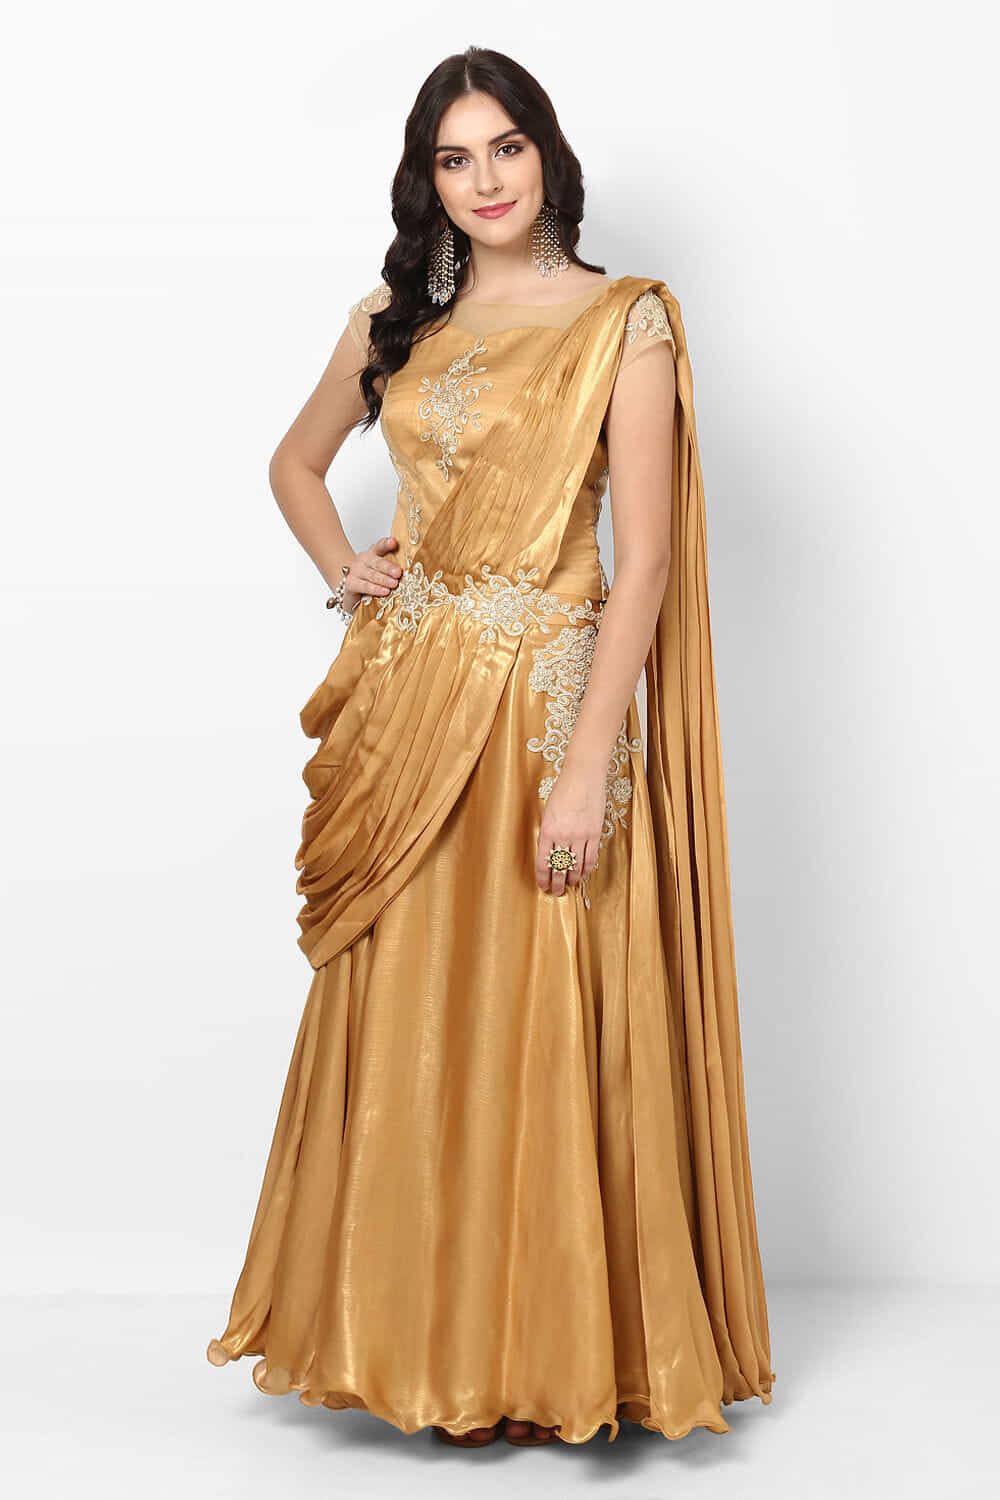 Rent Saree Gowns: Designer Women\'s Saree Gowns Online Collection in ...